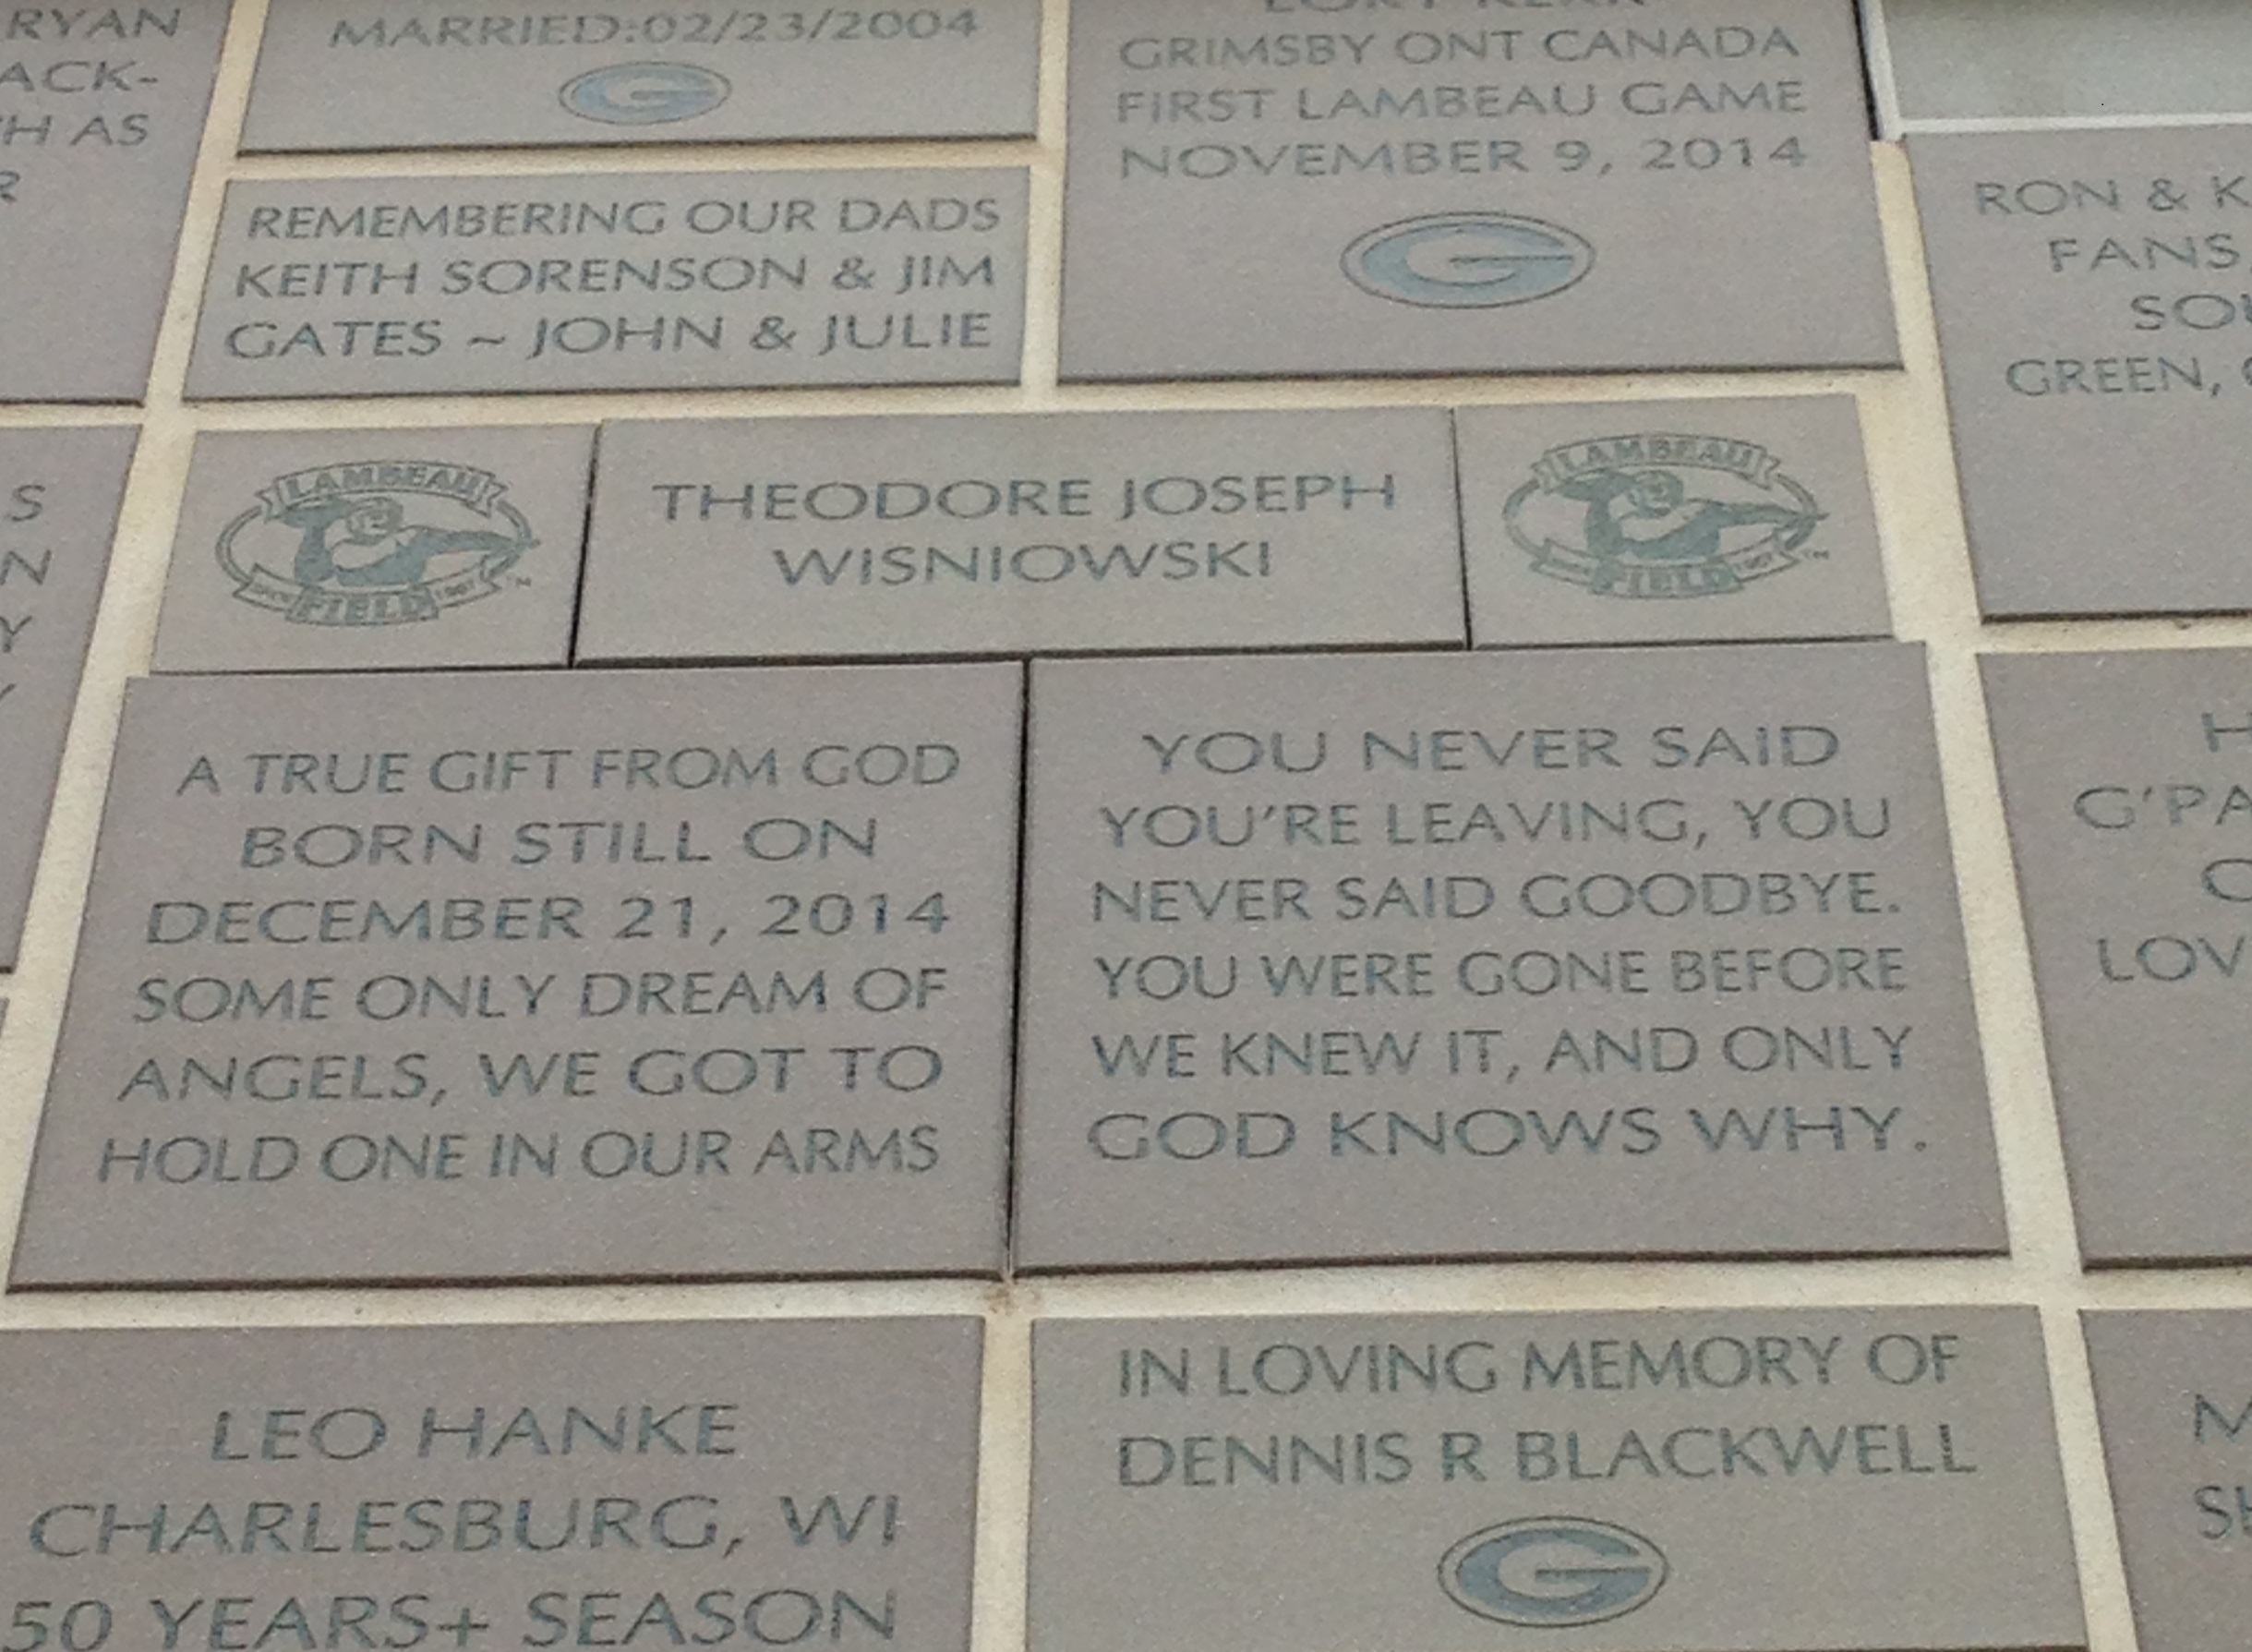 Memorial at Lambeau Field